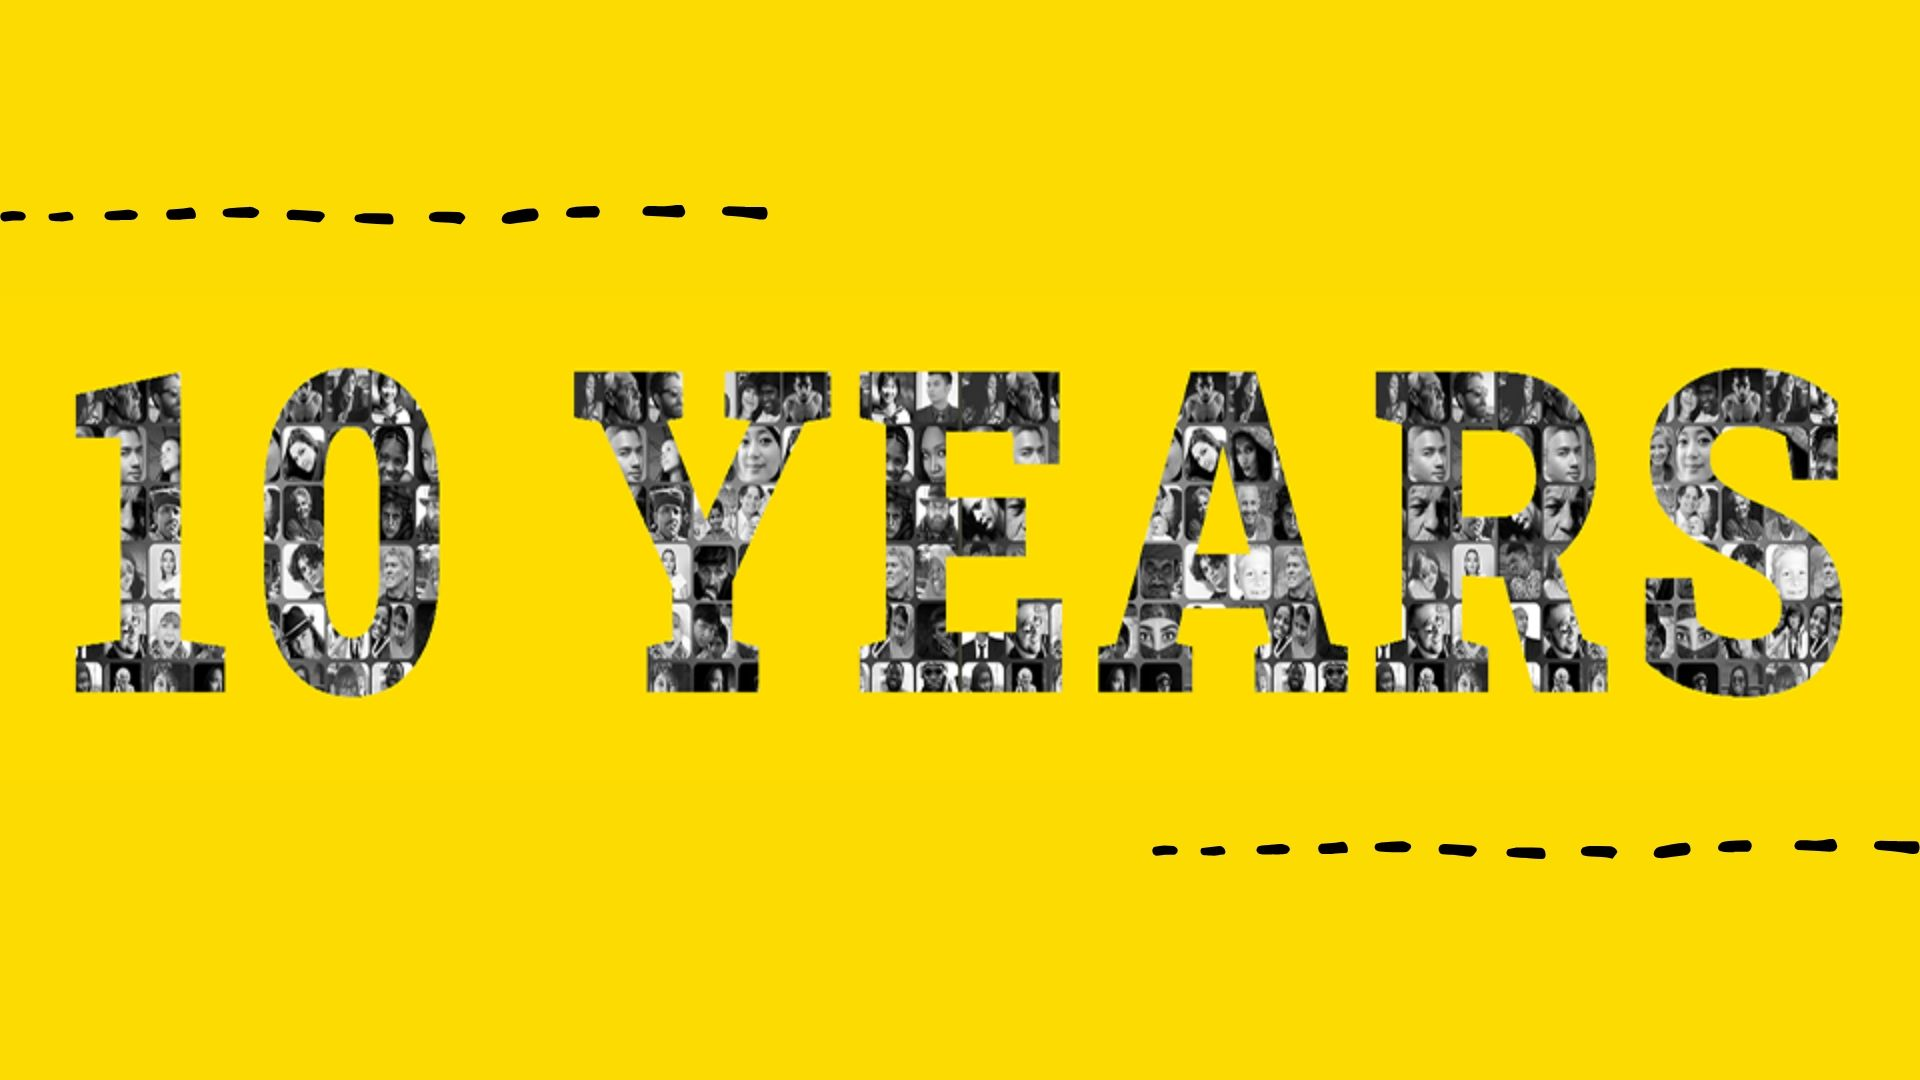 2020 Is A Special Year For Us: Youth Council Next Generation Is Celebrating One Decade Of Successful Work!